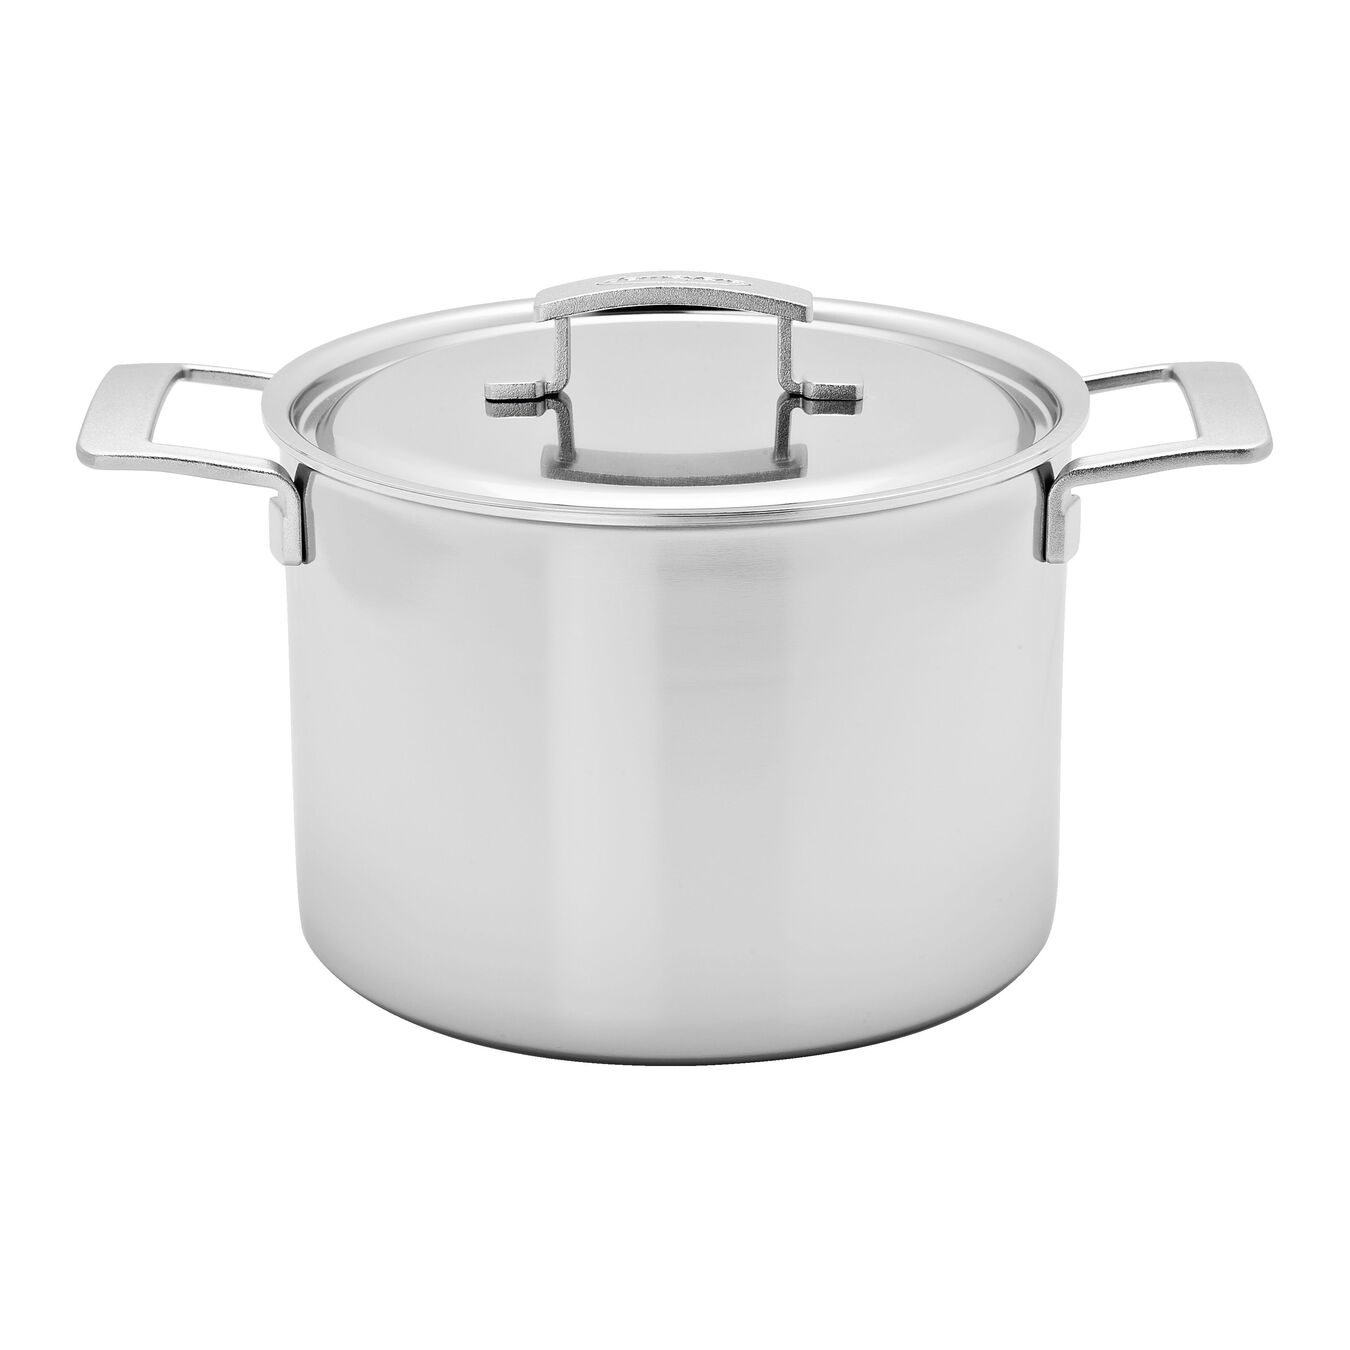 8-qt Stainless Steel Stock Pot,,large 1